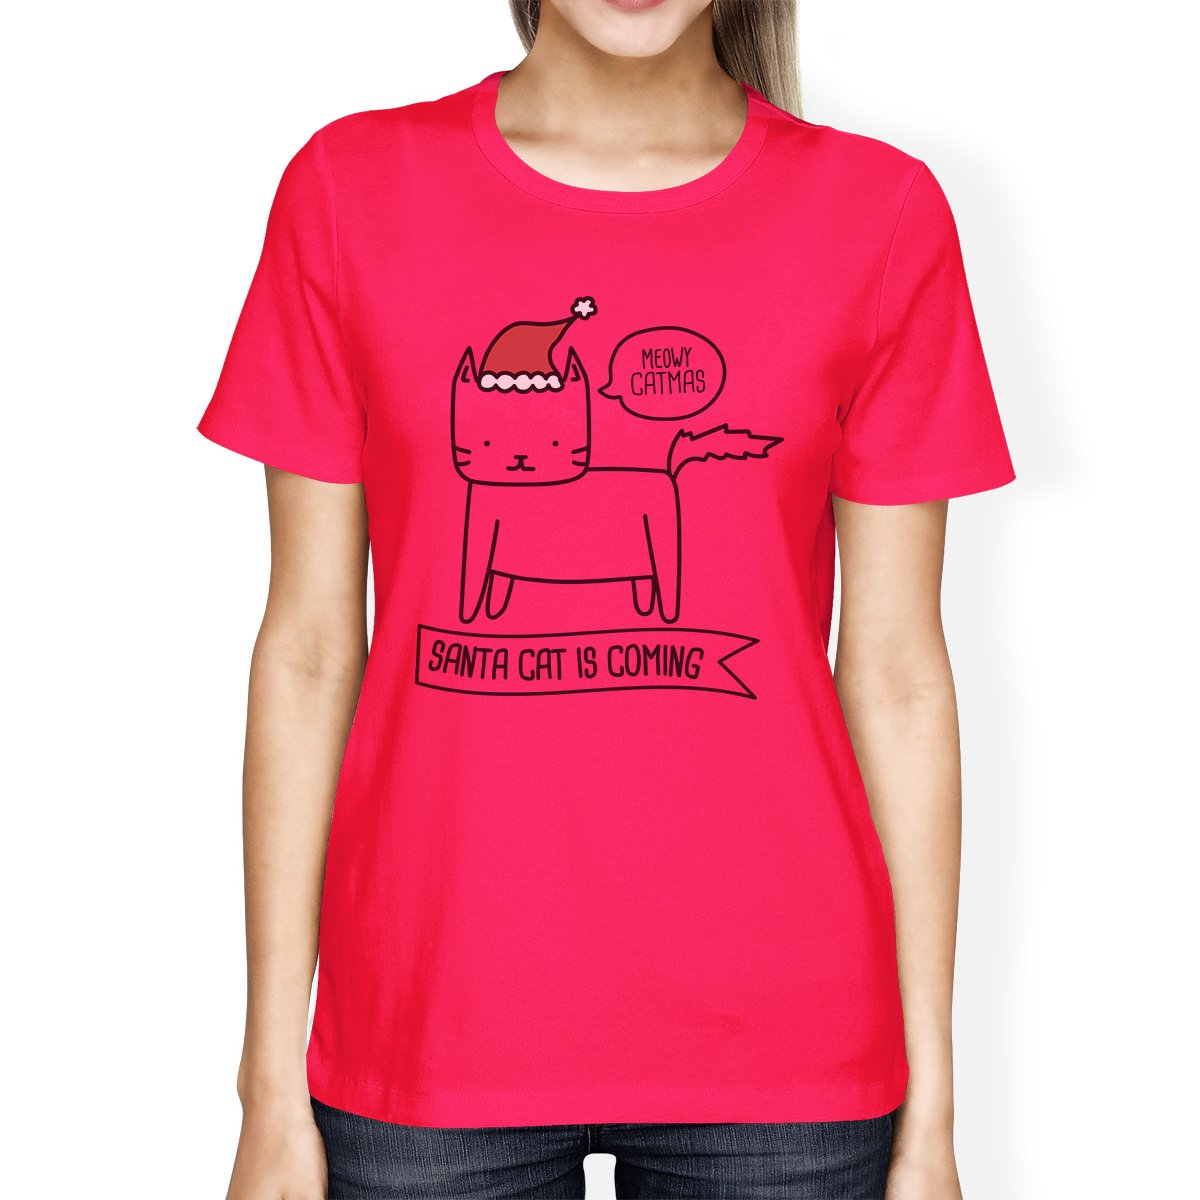 Meowy Catmas Santa Cat Is Coming Womens Hot Pink Shirt